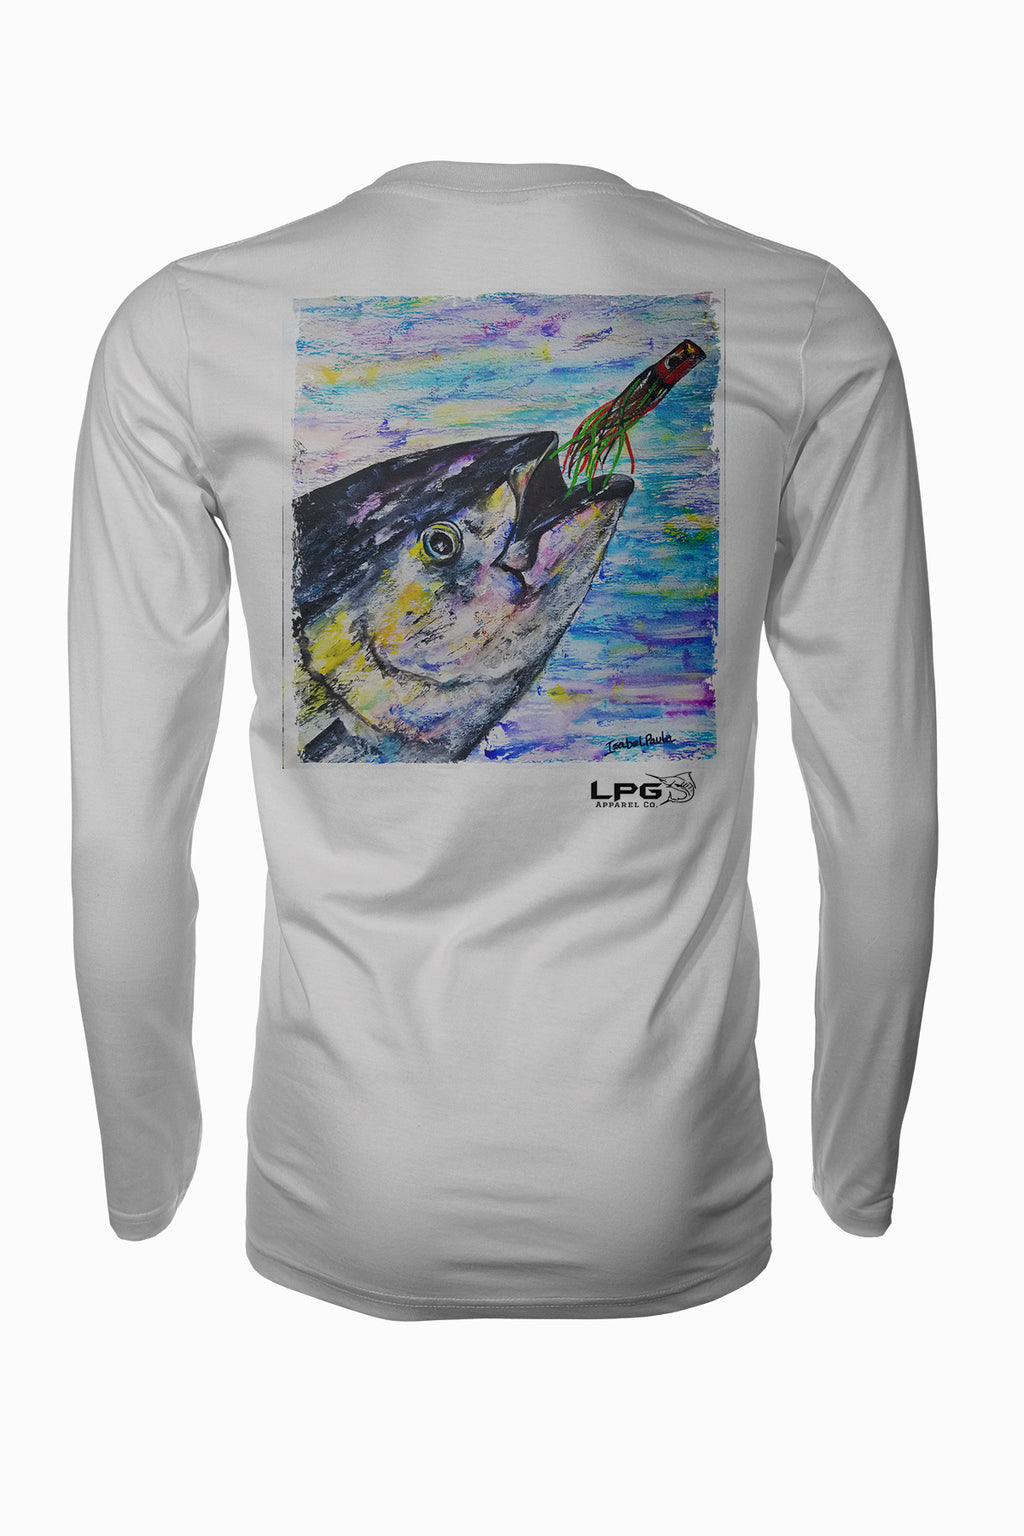 LPG Apparel Co. Yellowfin Chase Rash Guard LS Performance UPF 50+ Unisex T-Shirt - Lobo Performance Gear